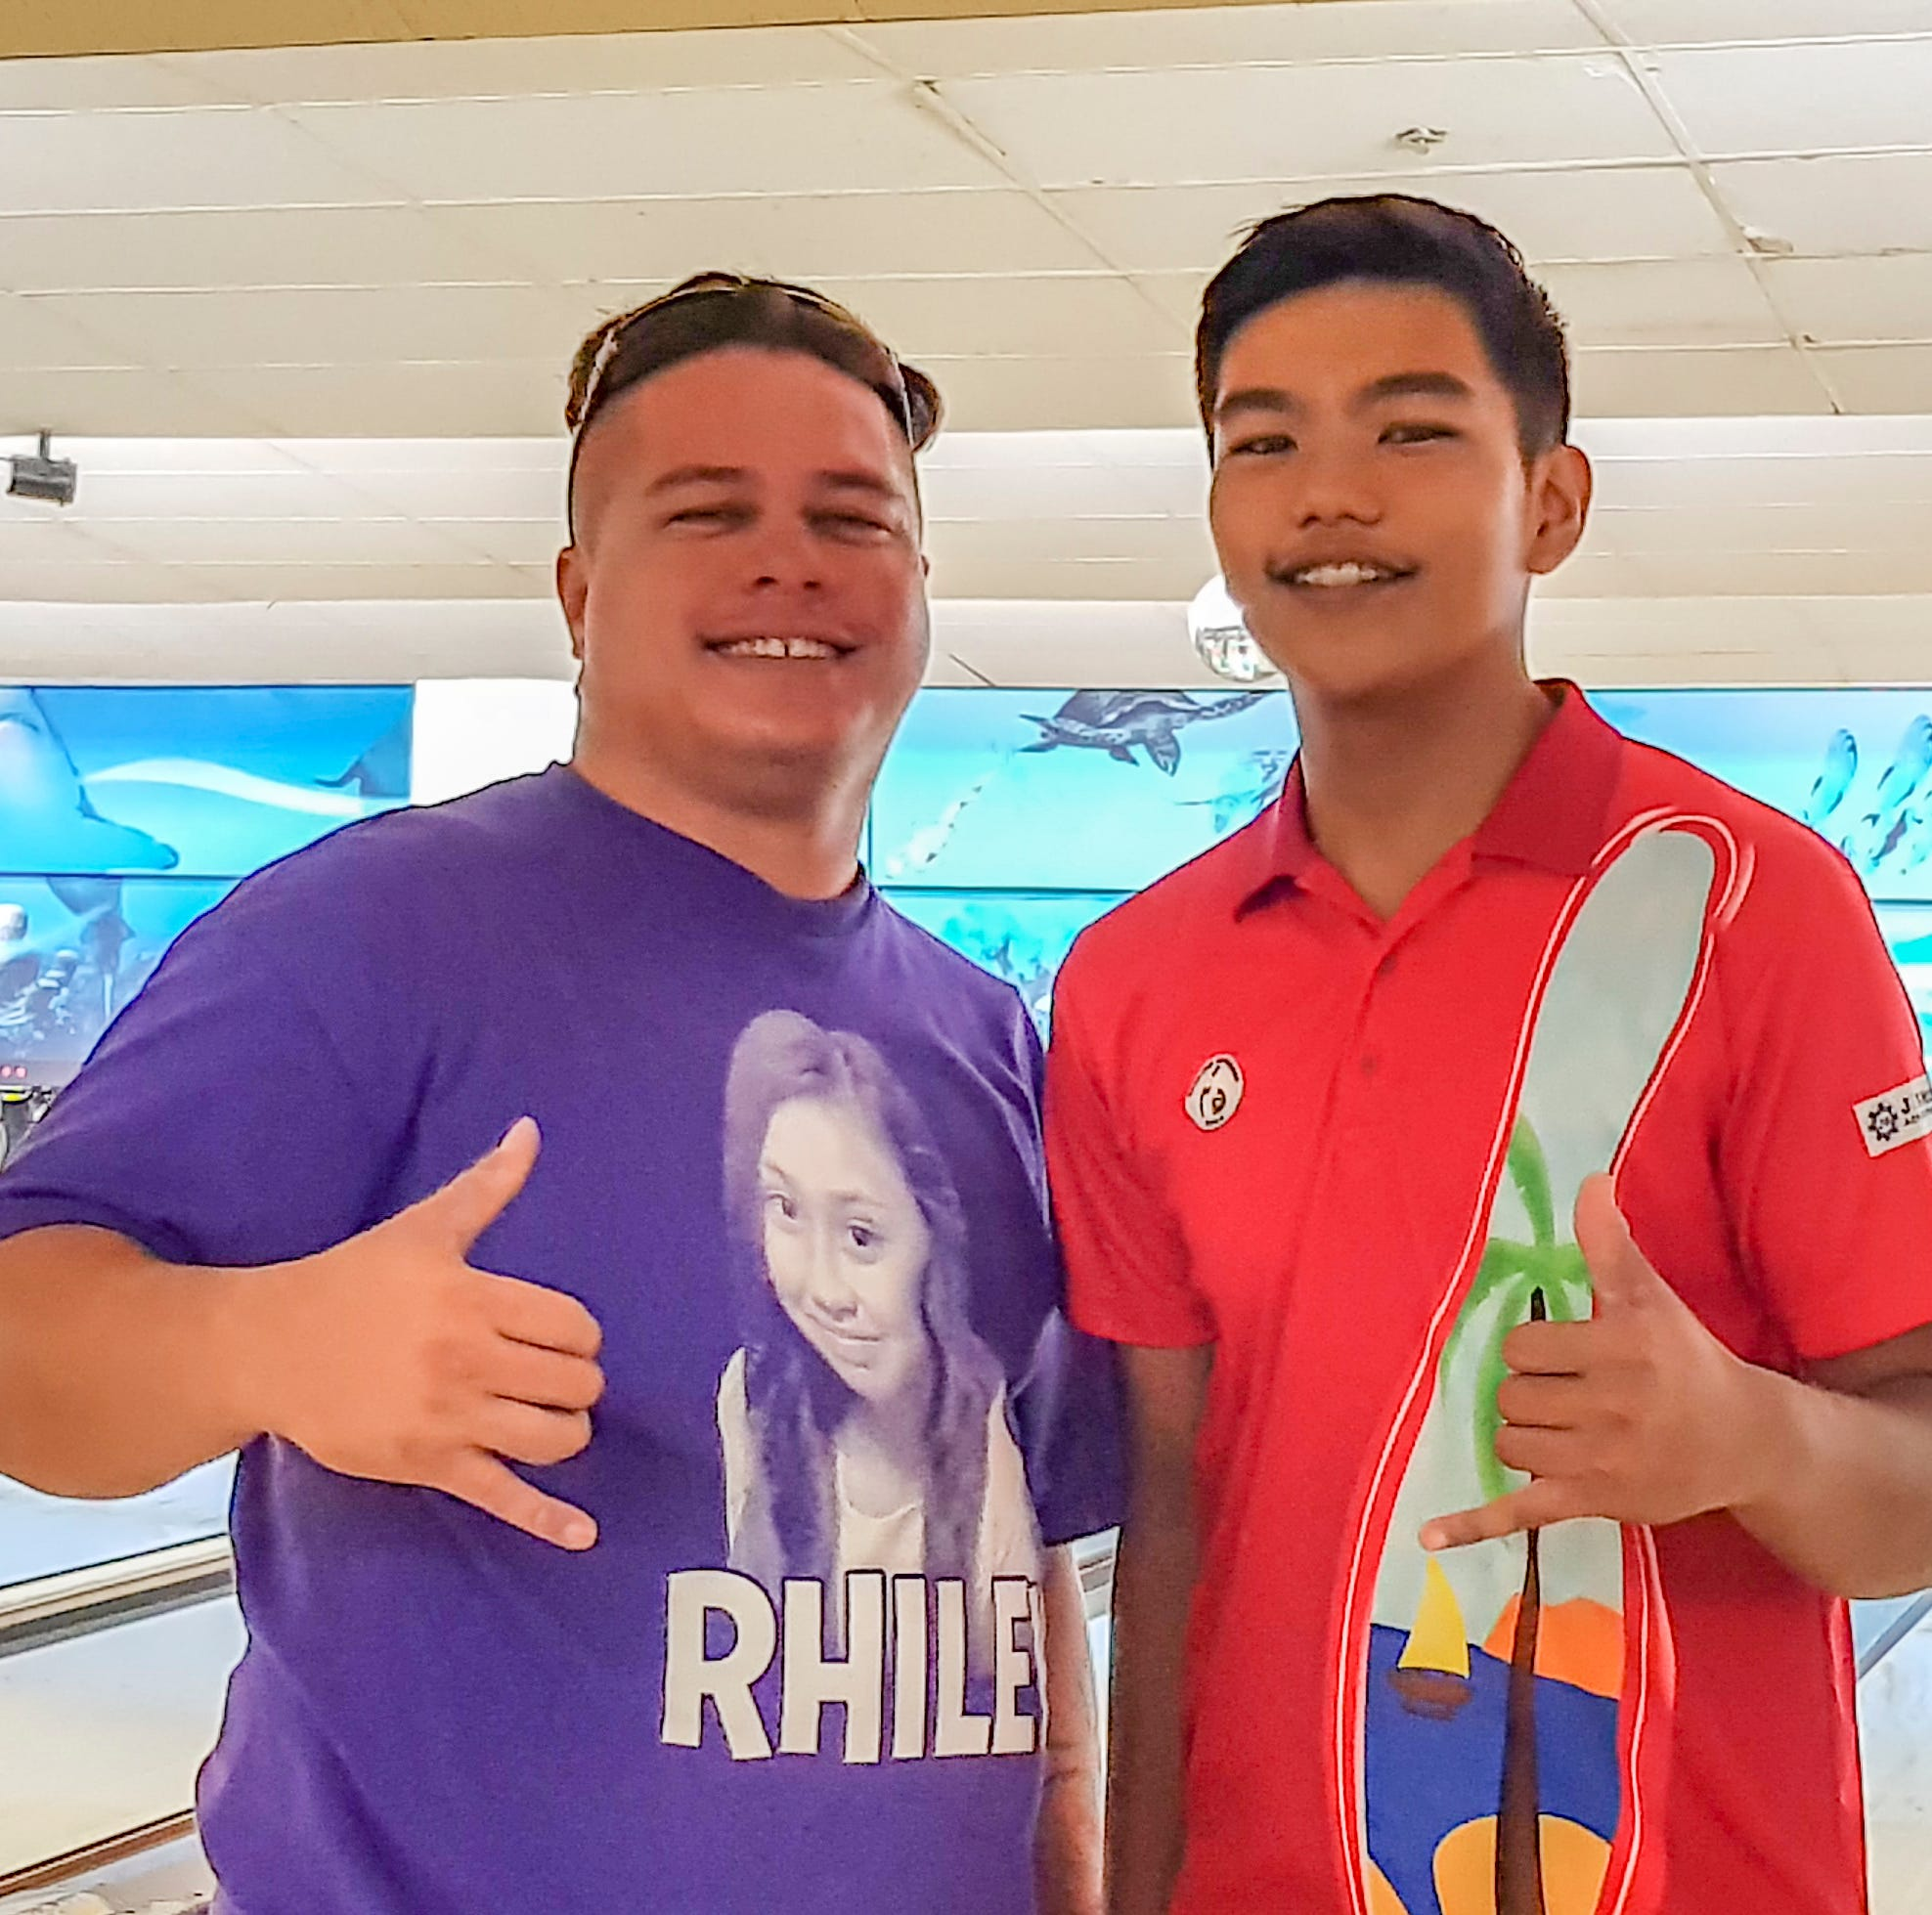 Jeremiah Camacho, Jesse Flickinger takes King, Prince titles in bowling competition